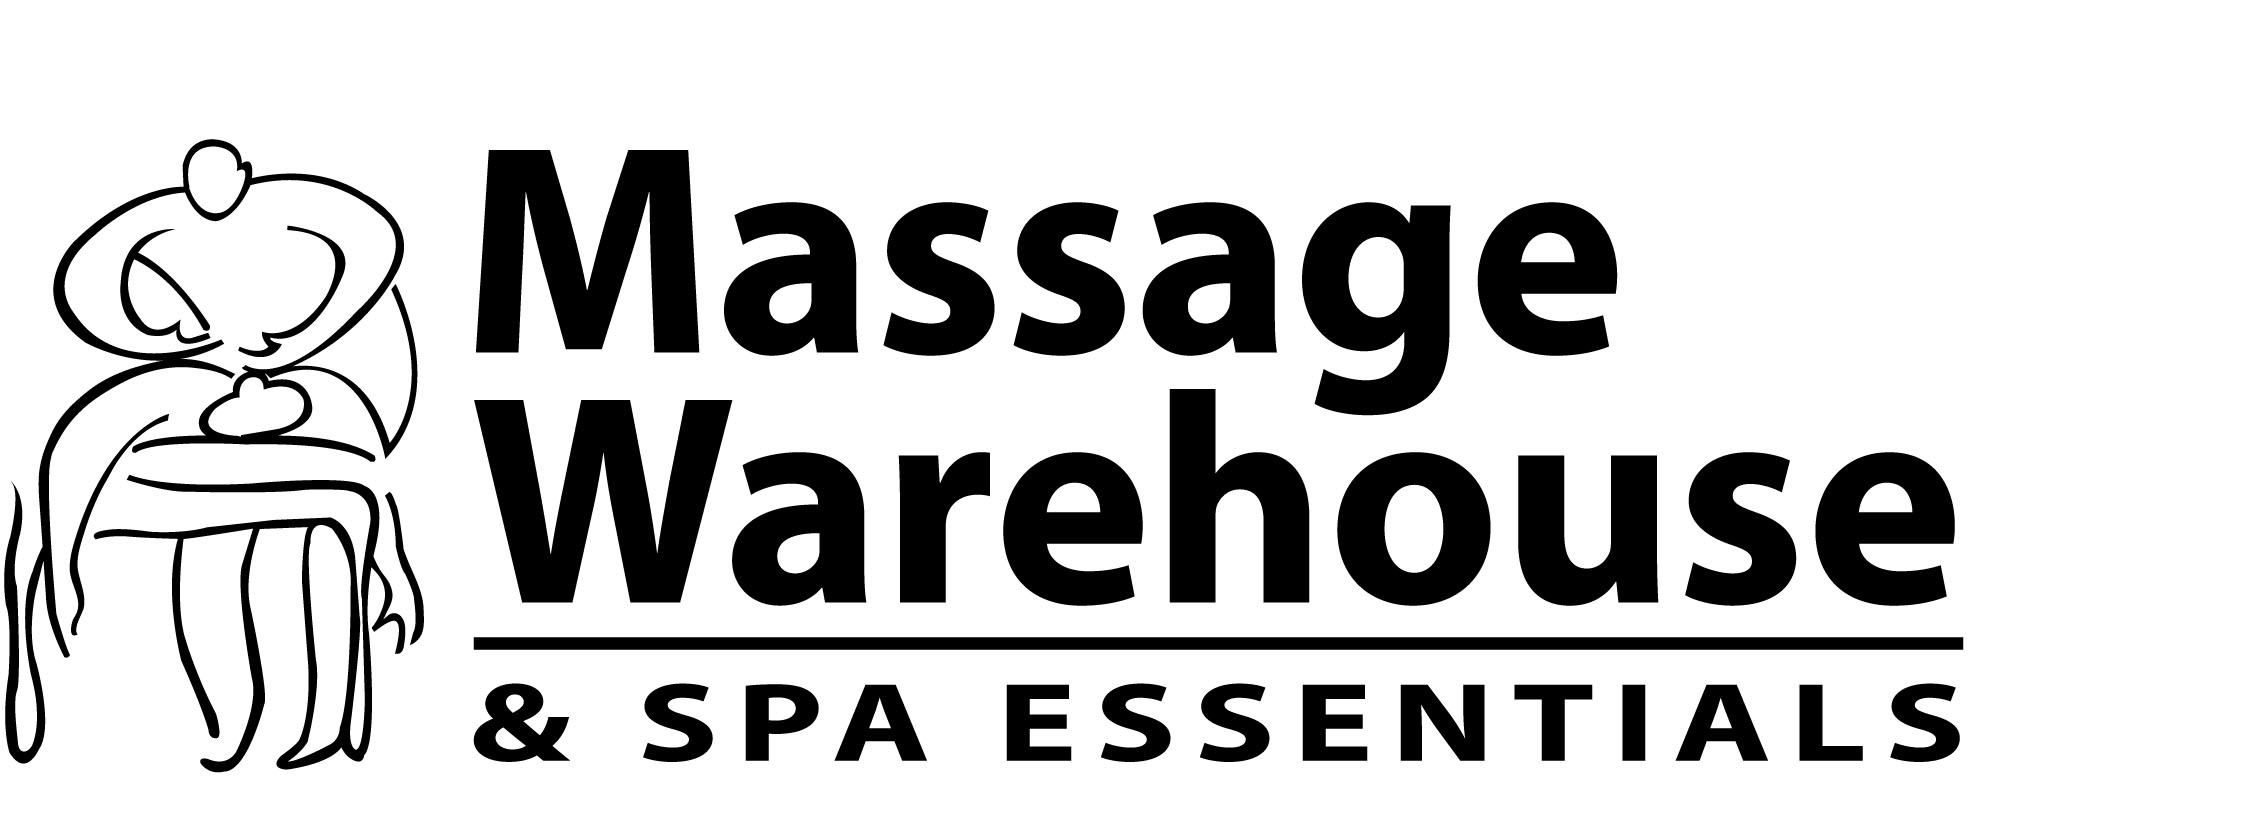 Liddle Kidz Foundation Receives Contribution from Massage Warehouse Sanctuary, MASSAGE Magazine